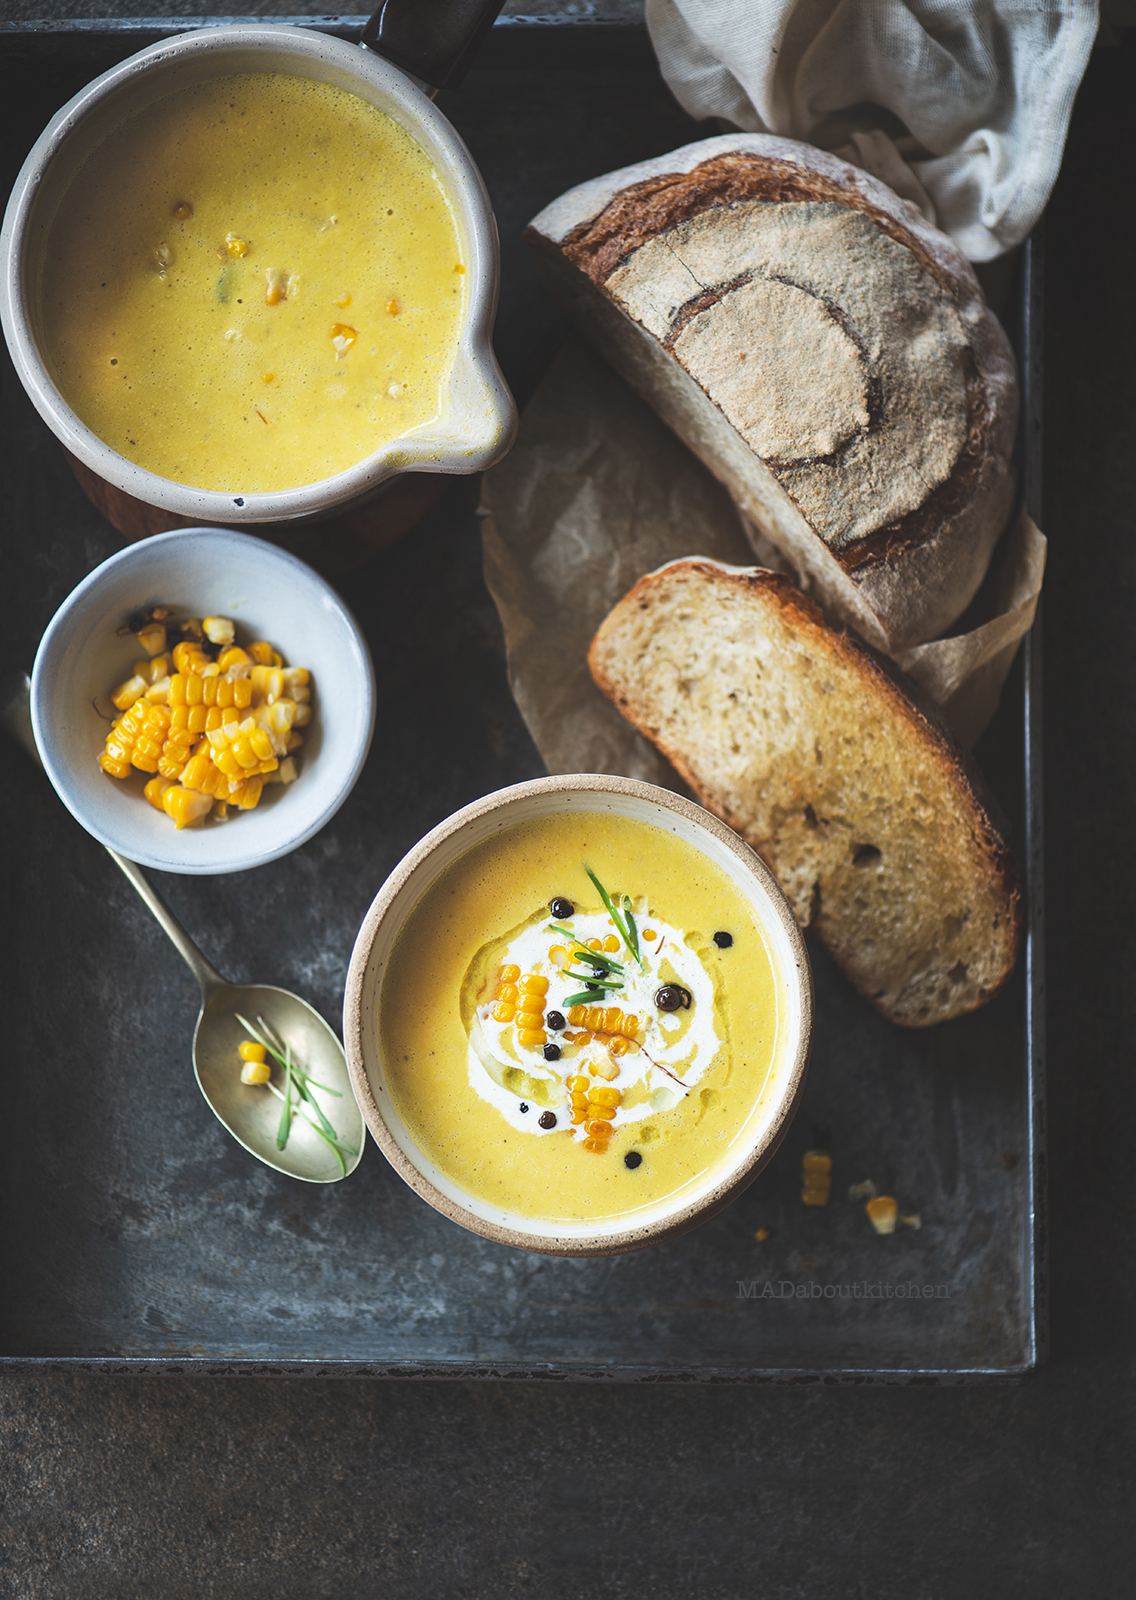 Corn soup is a creamy, light soup that is flavoured using garlic, rosemary and is served with a slice of crusty sourdough bread.